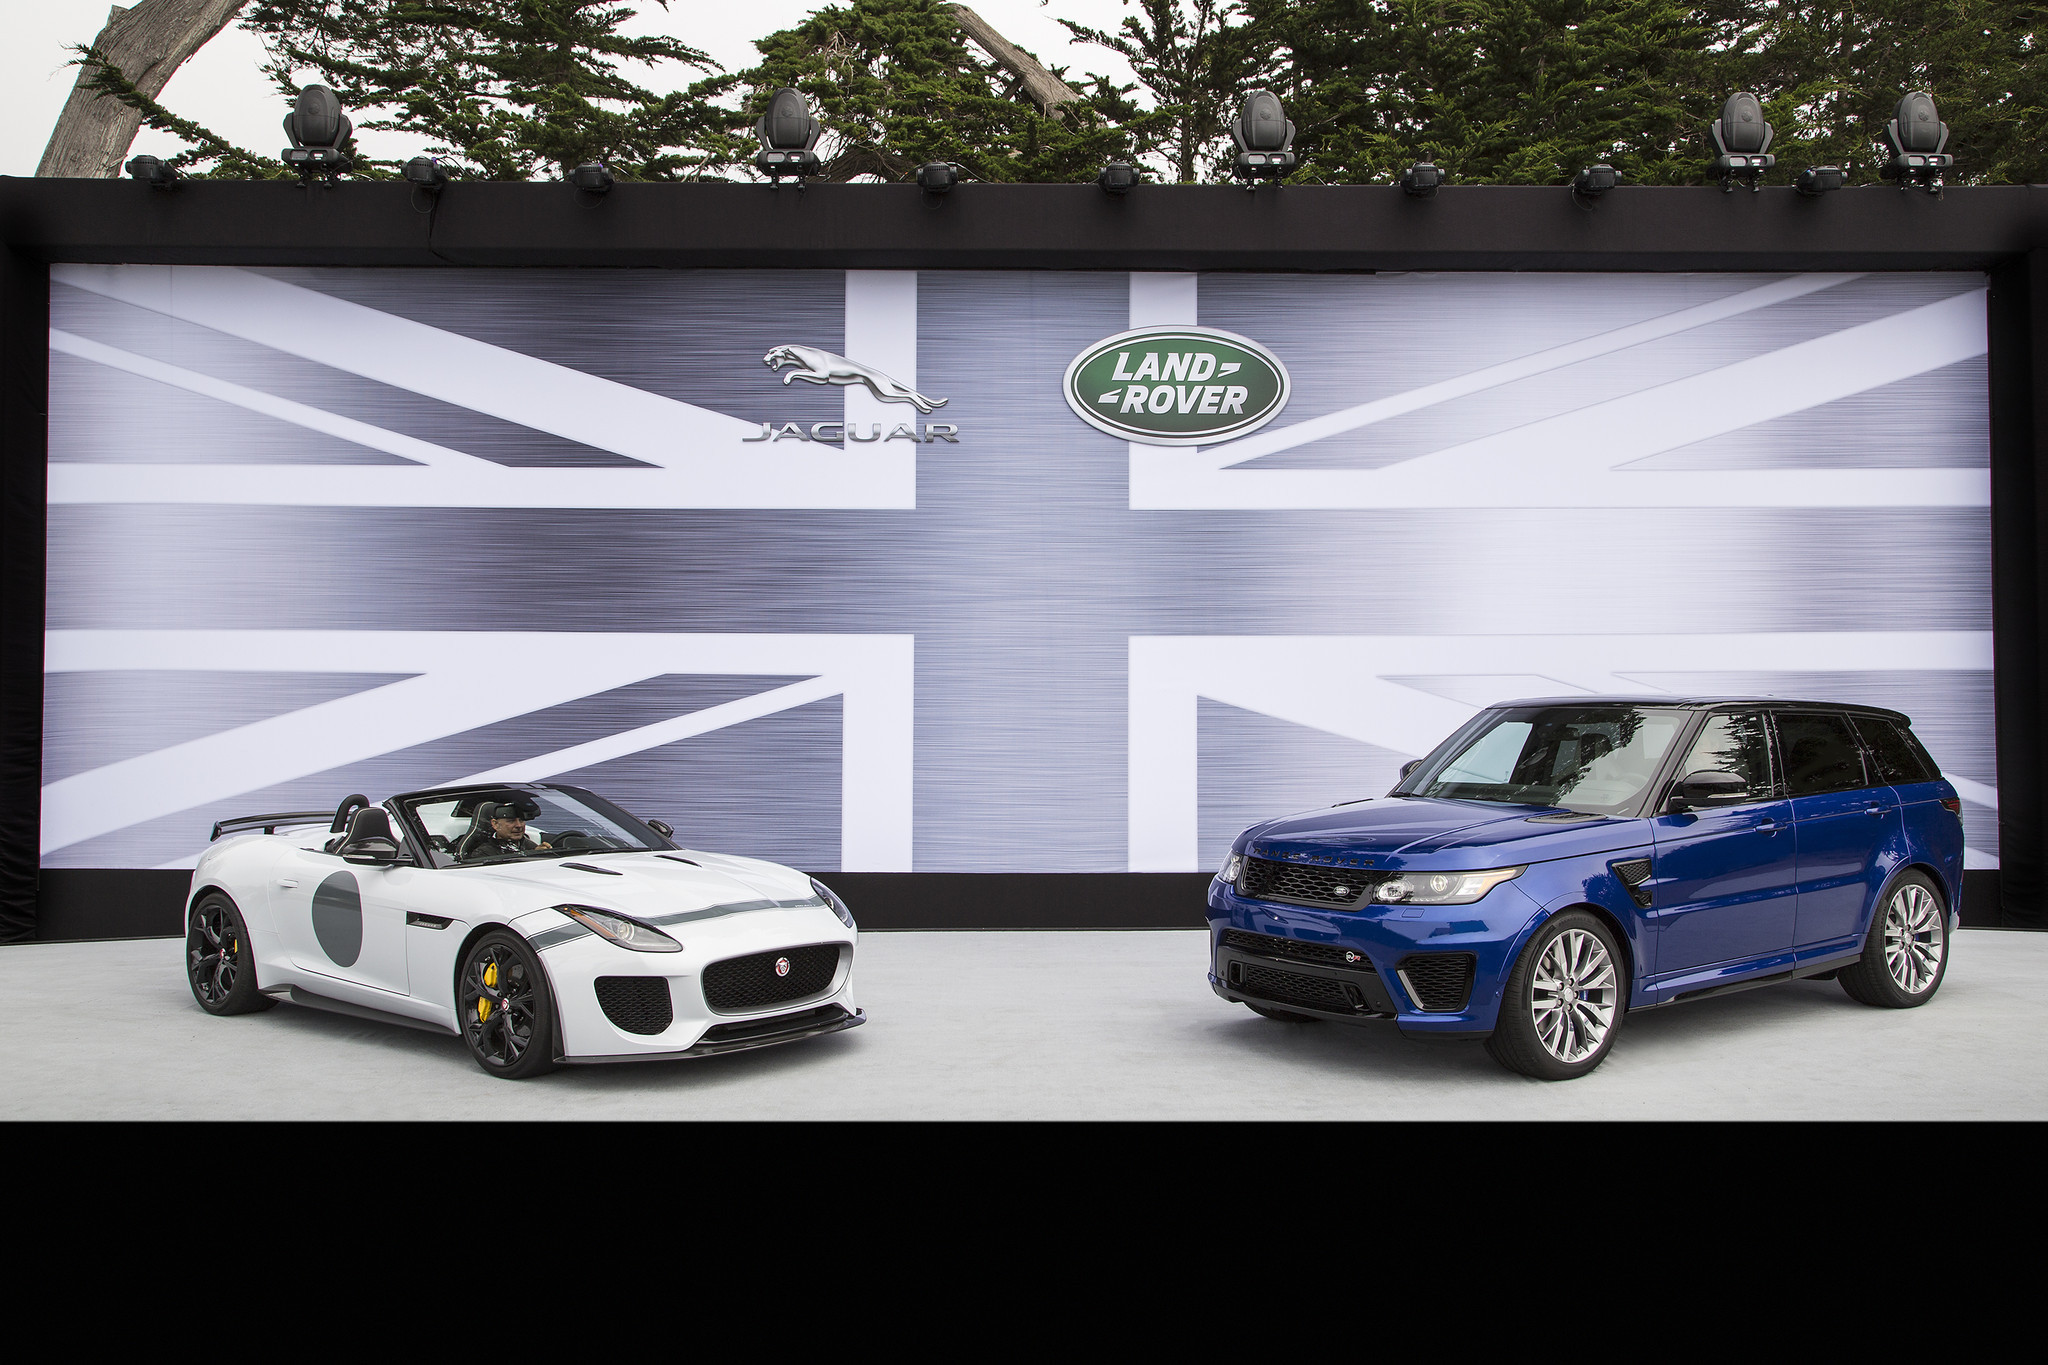 2014 pebble beach jaguar land rover launches speed seeking svo division la times. Black Bedroom Furniture Sets. Home Design Ideas